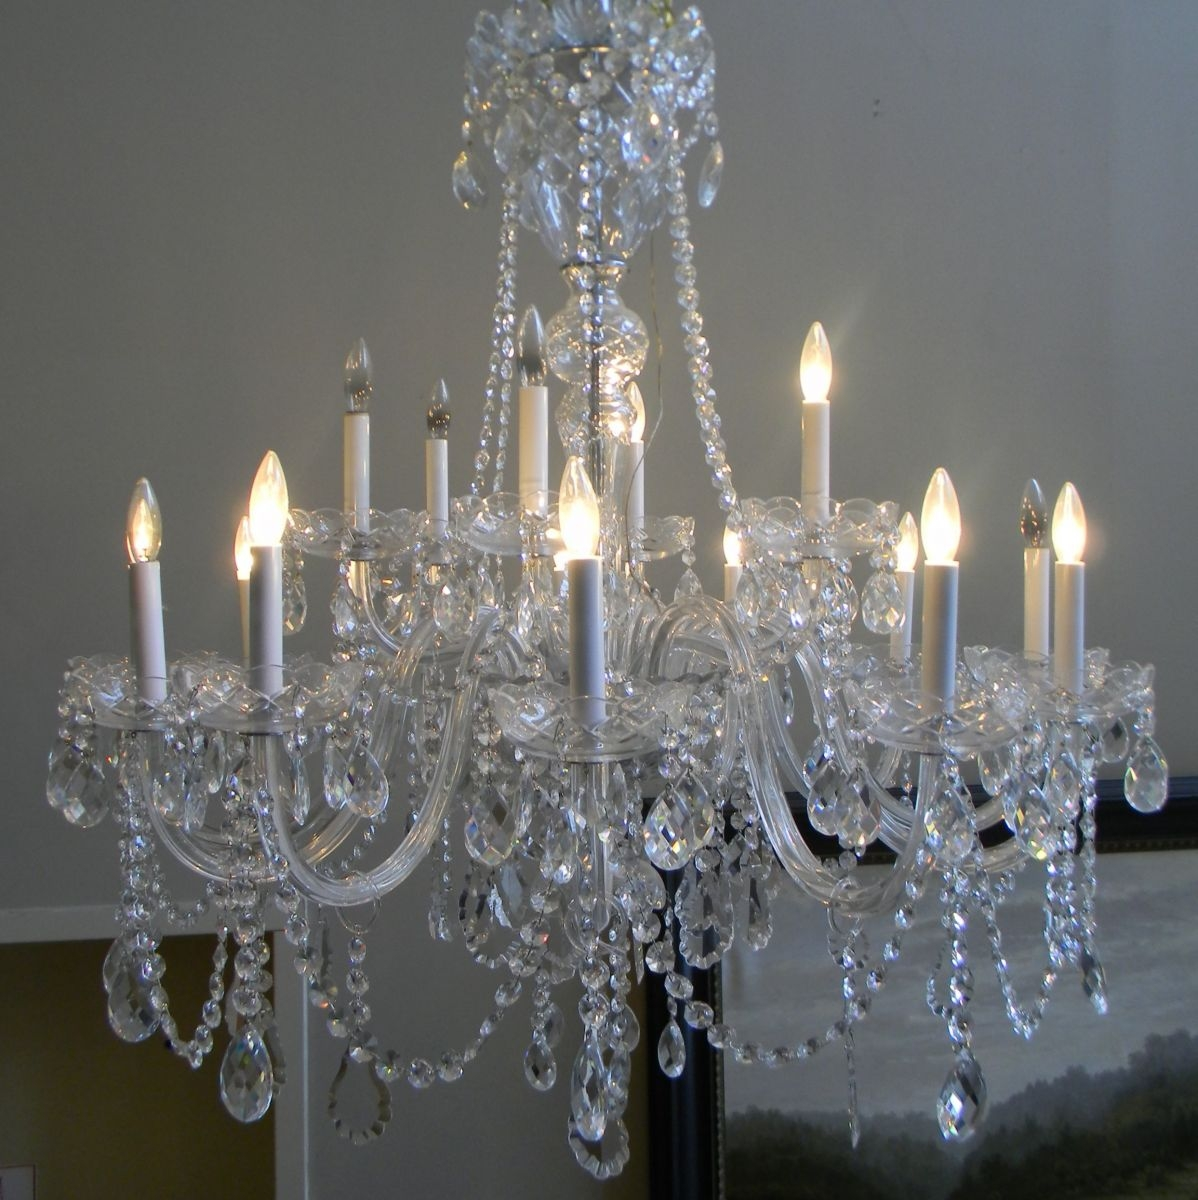 Gas Lamp Antiques Intended For Lead Crystal Chandeliers (Image 12 of 15)